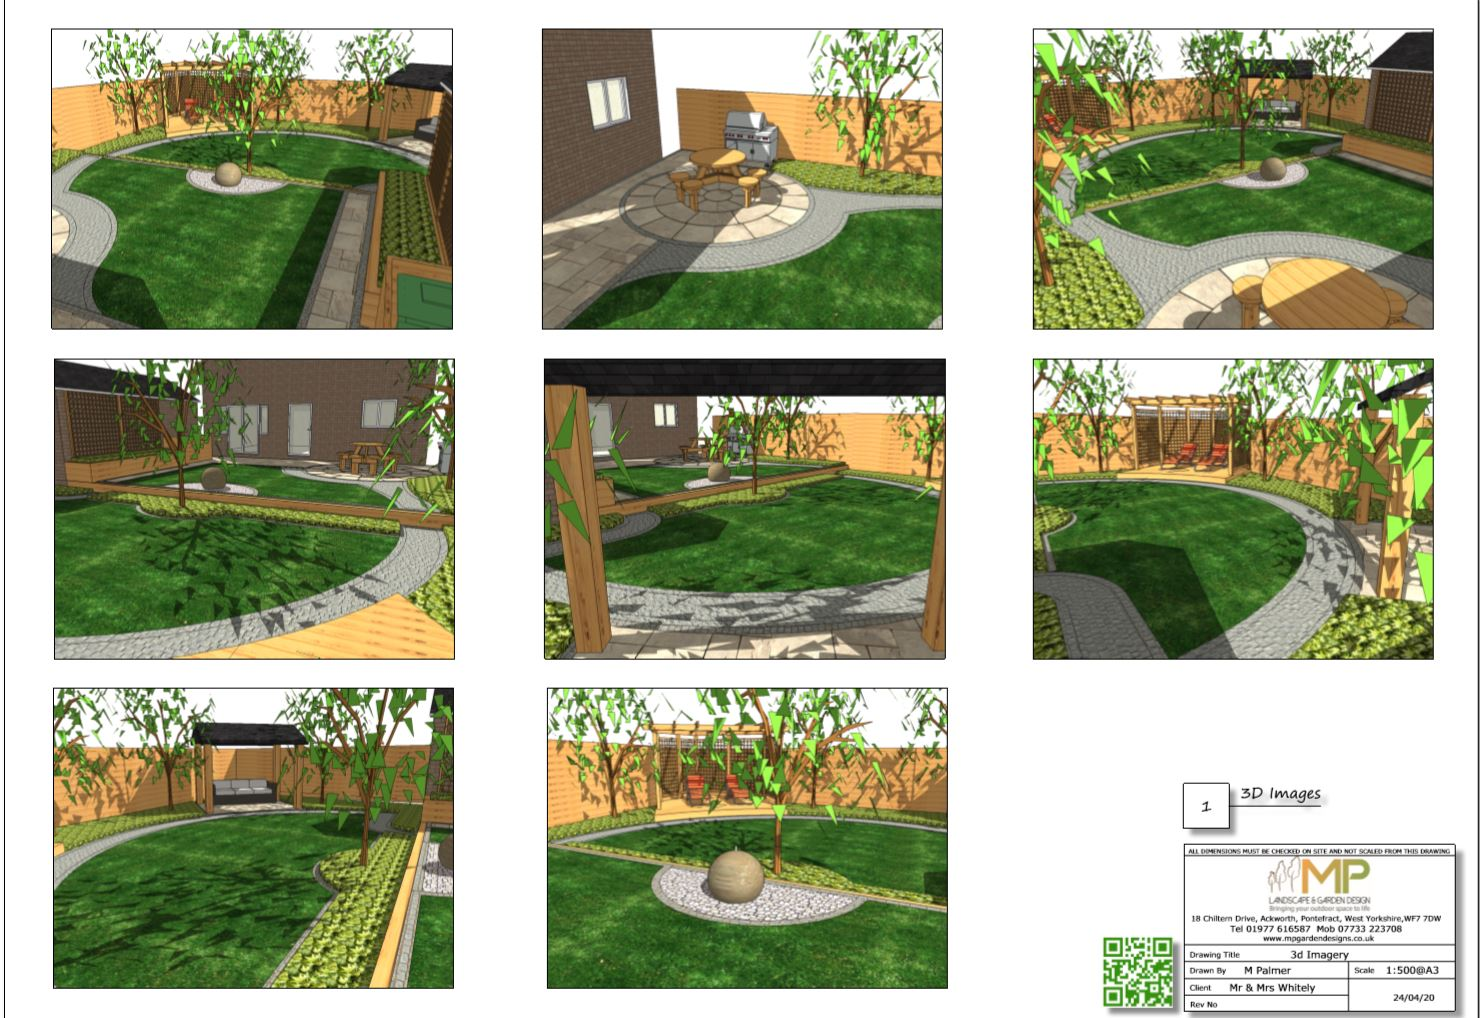 4, Concept plan-1, 3D images for a rear garden in Pontefract